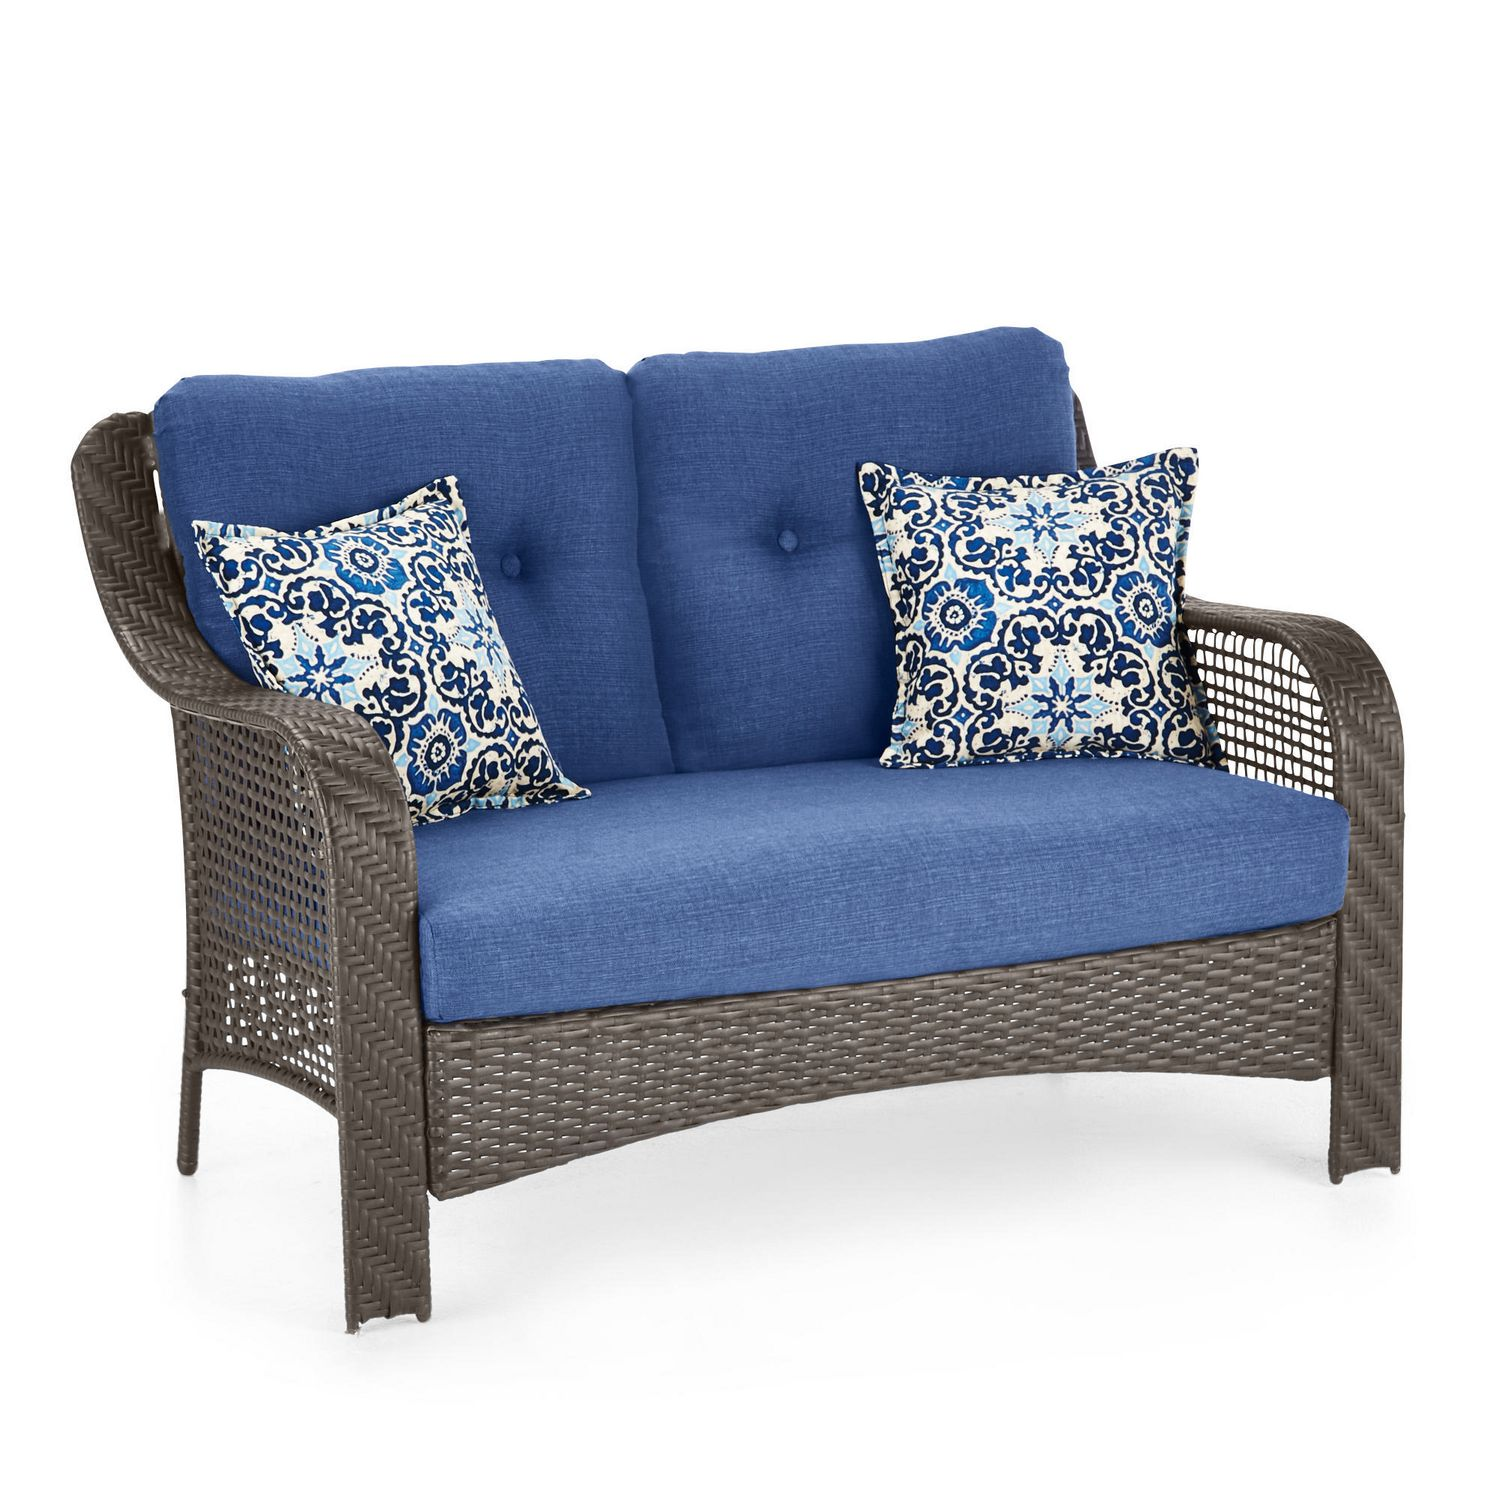 loveseat table with itm twin adjoining vonhaus and bench outdoor sentinel jill textoline furniture patio garden jack duo companion grey seat